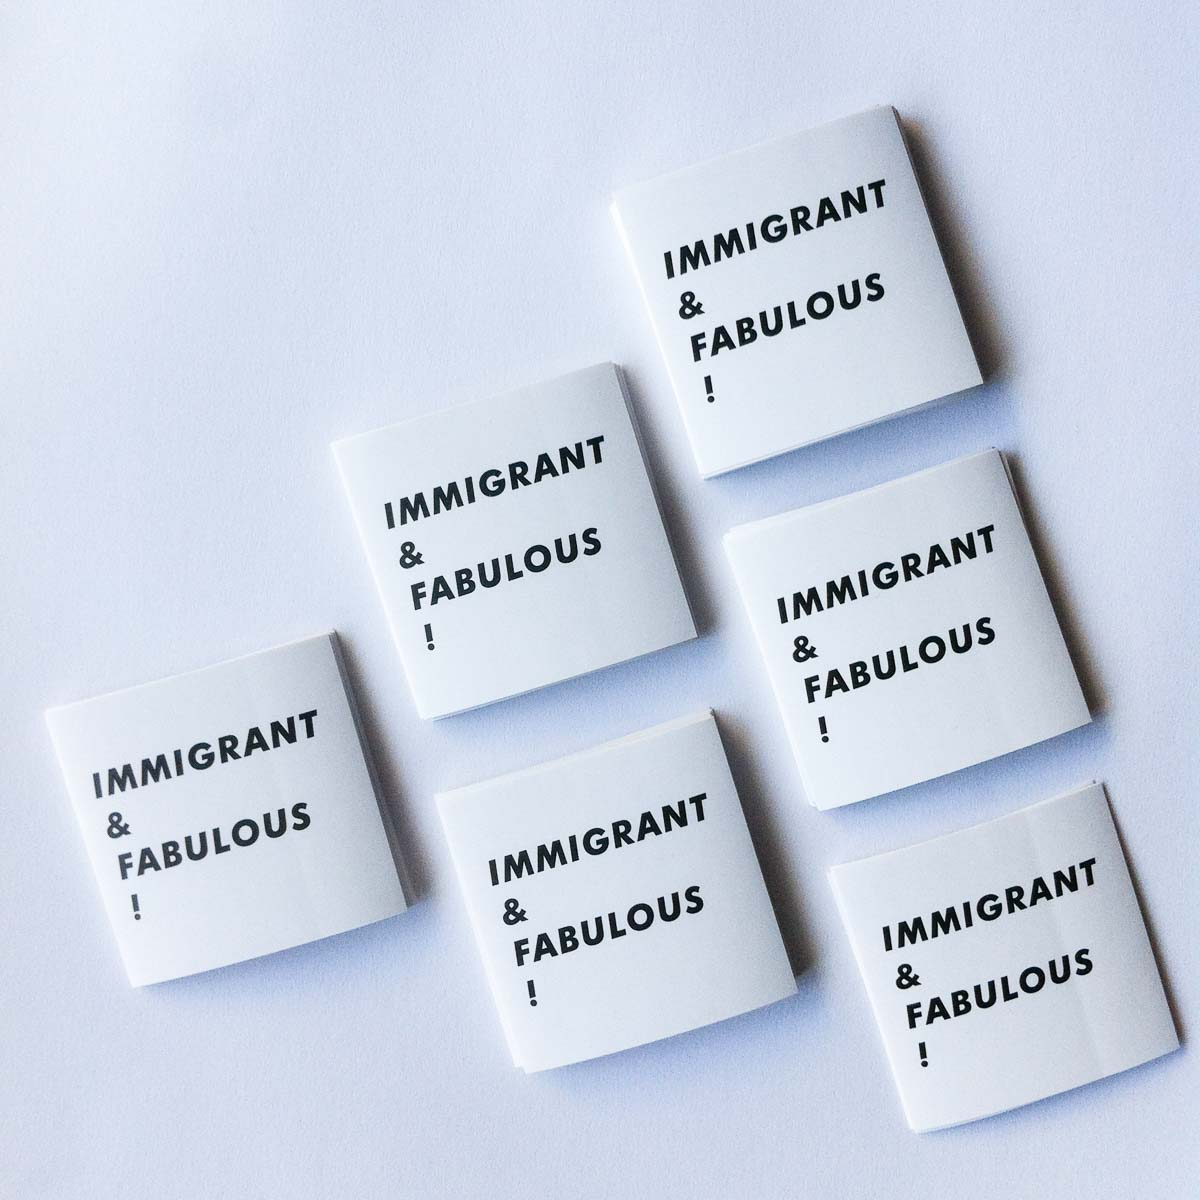 """Immigrant & Fabulous!"" stickers"